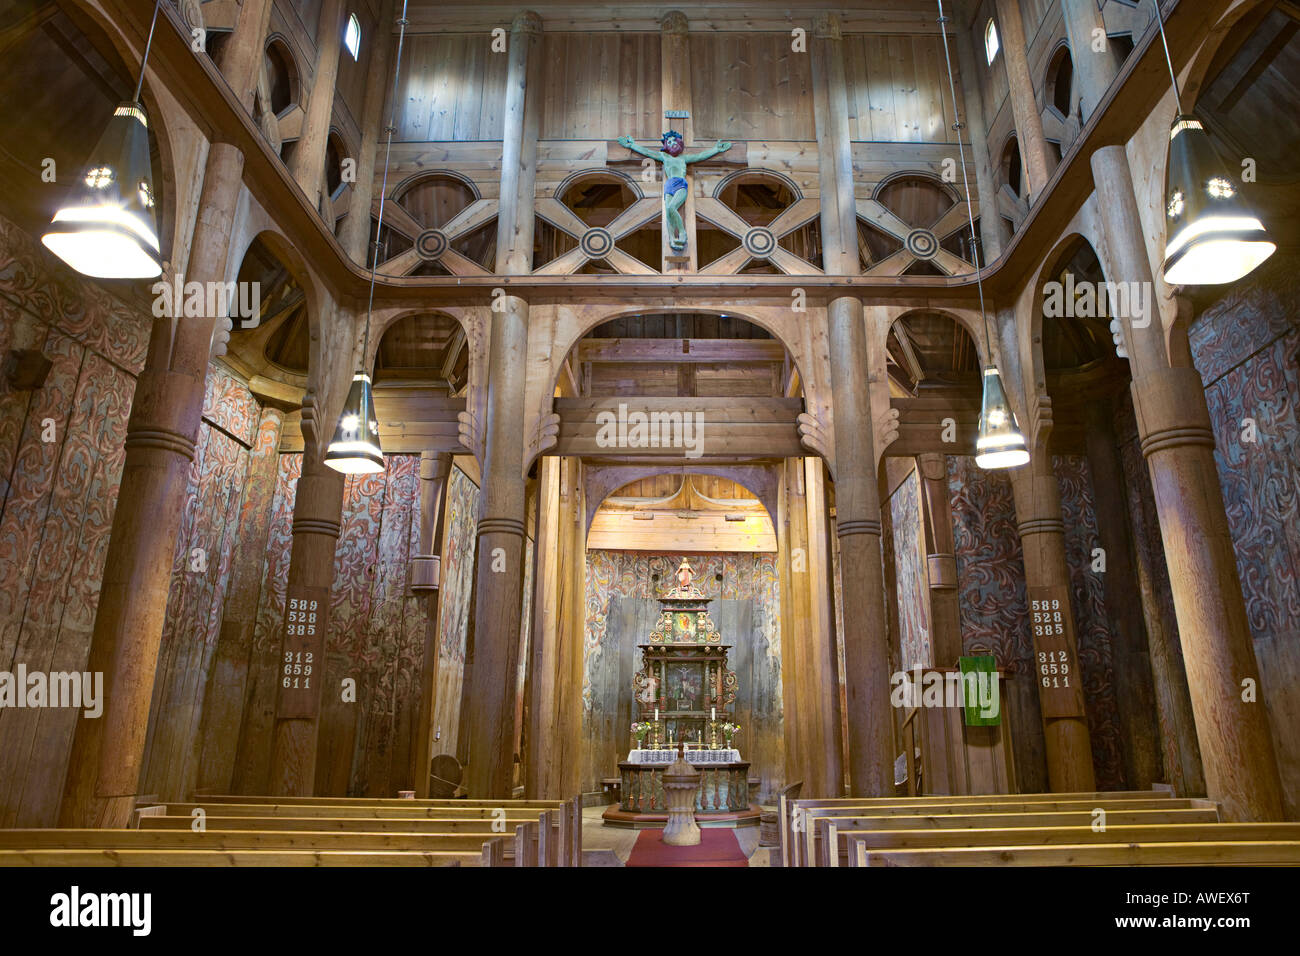 Stock Photo - Interior view of Heddal Stave Church (Heddal Stavkirke ...